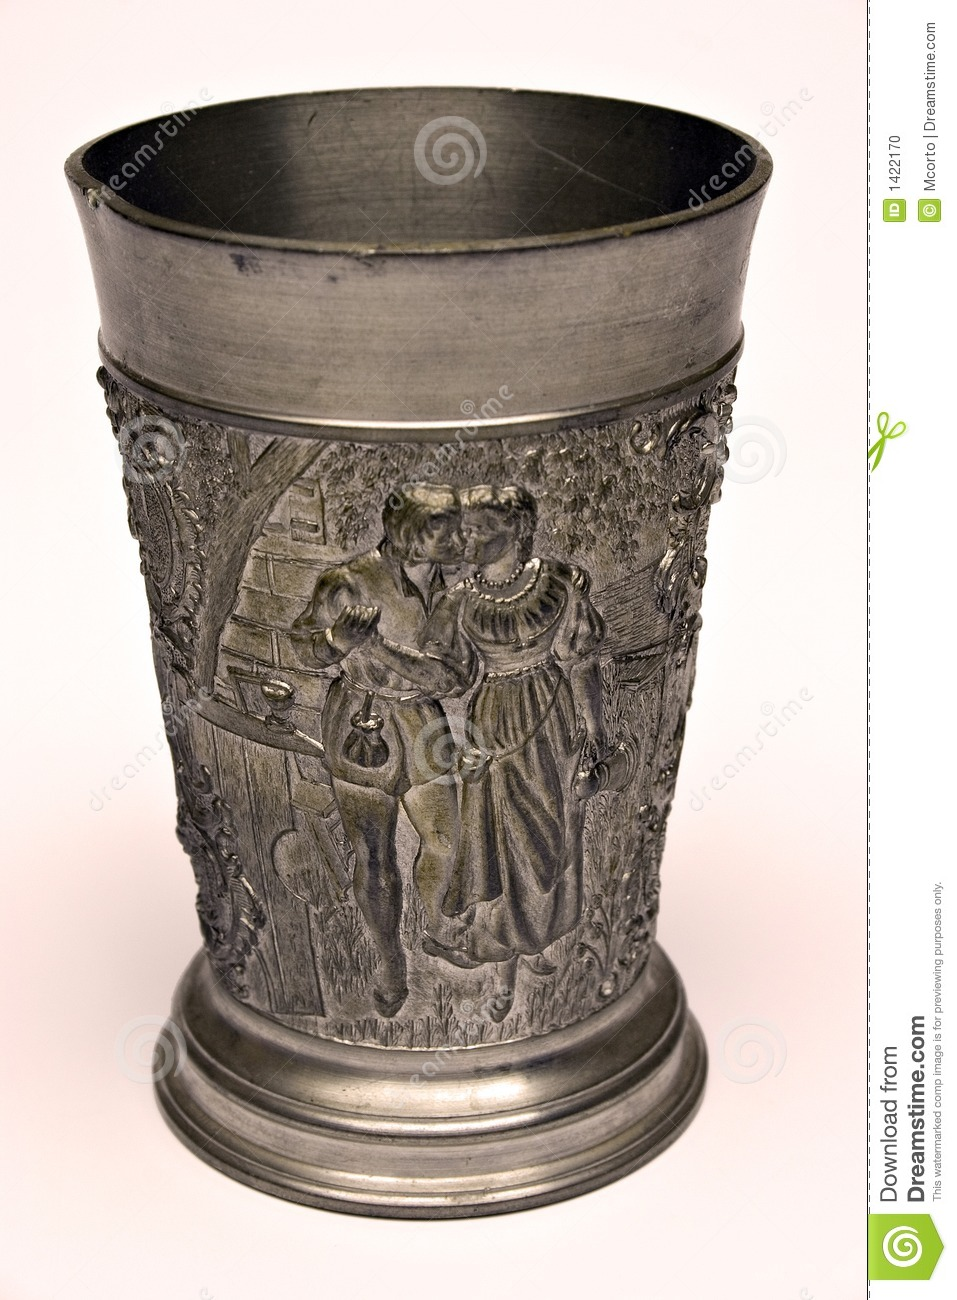 Medieval Cup Stock Photo Image Of Historical Crafted